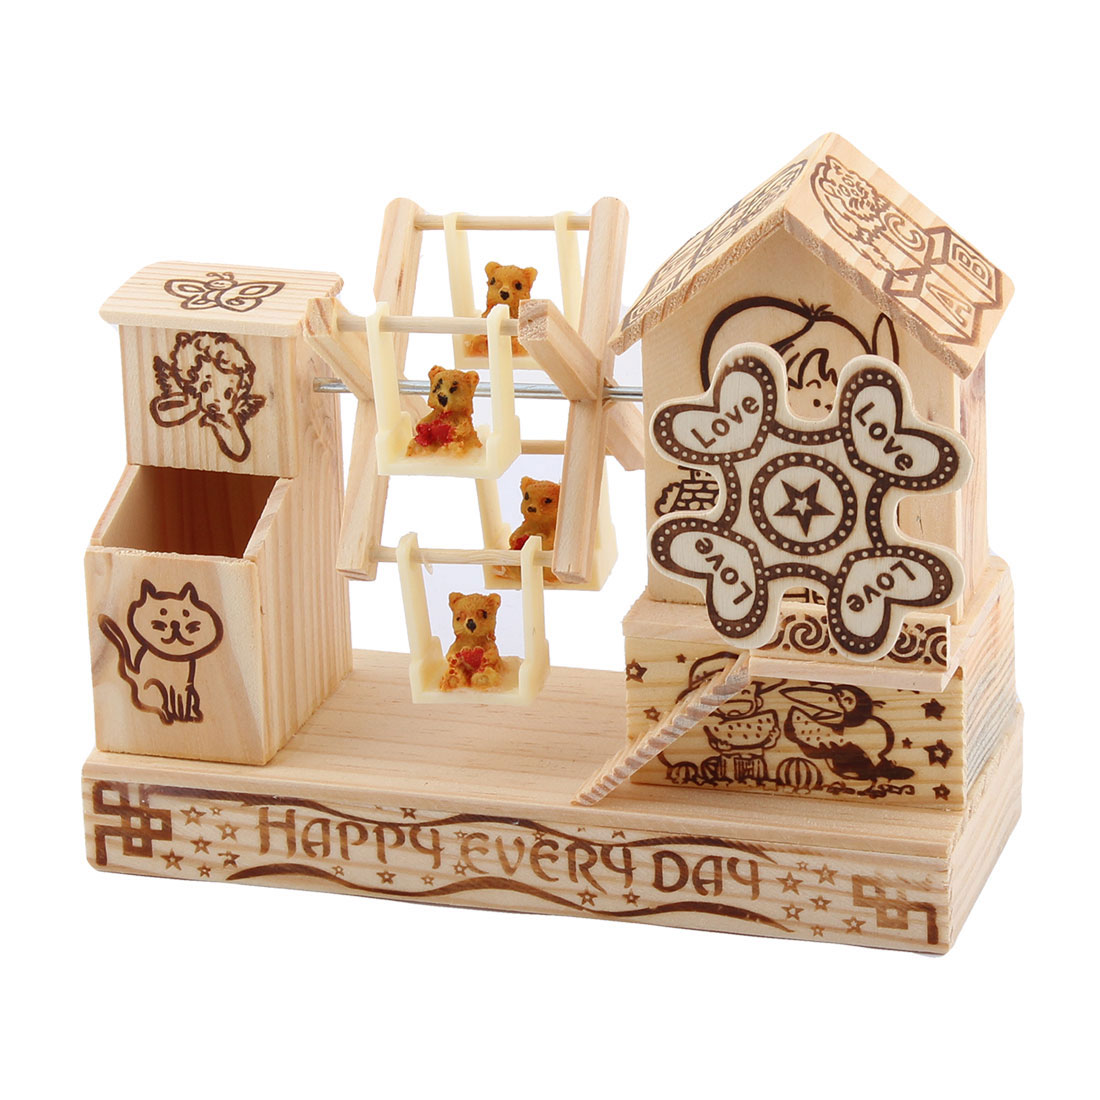 Office Desktop Wooden Pen Holder Clockwork Hand Crank Handmade Music Box Beige